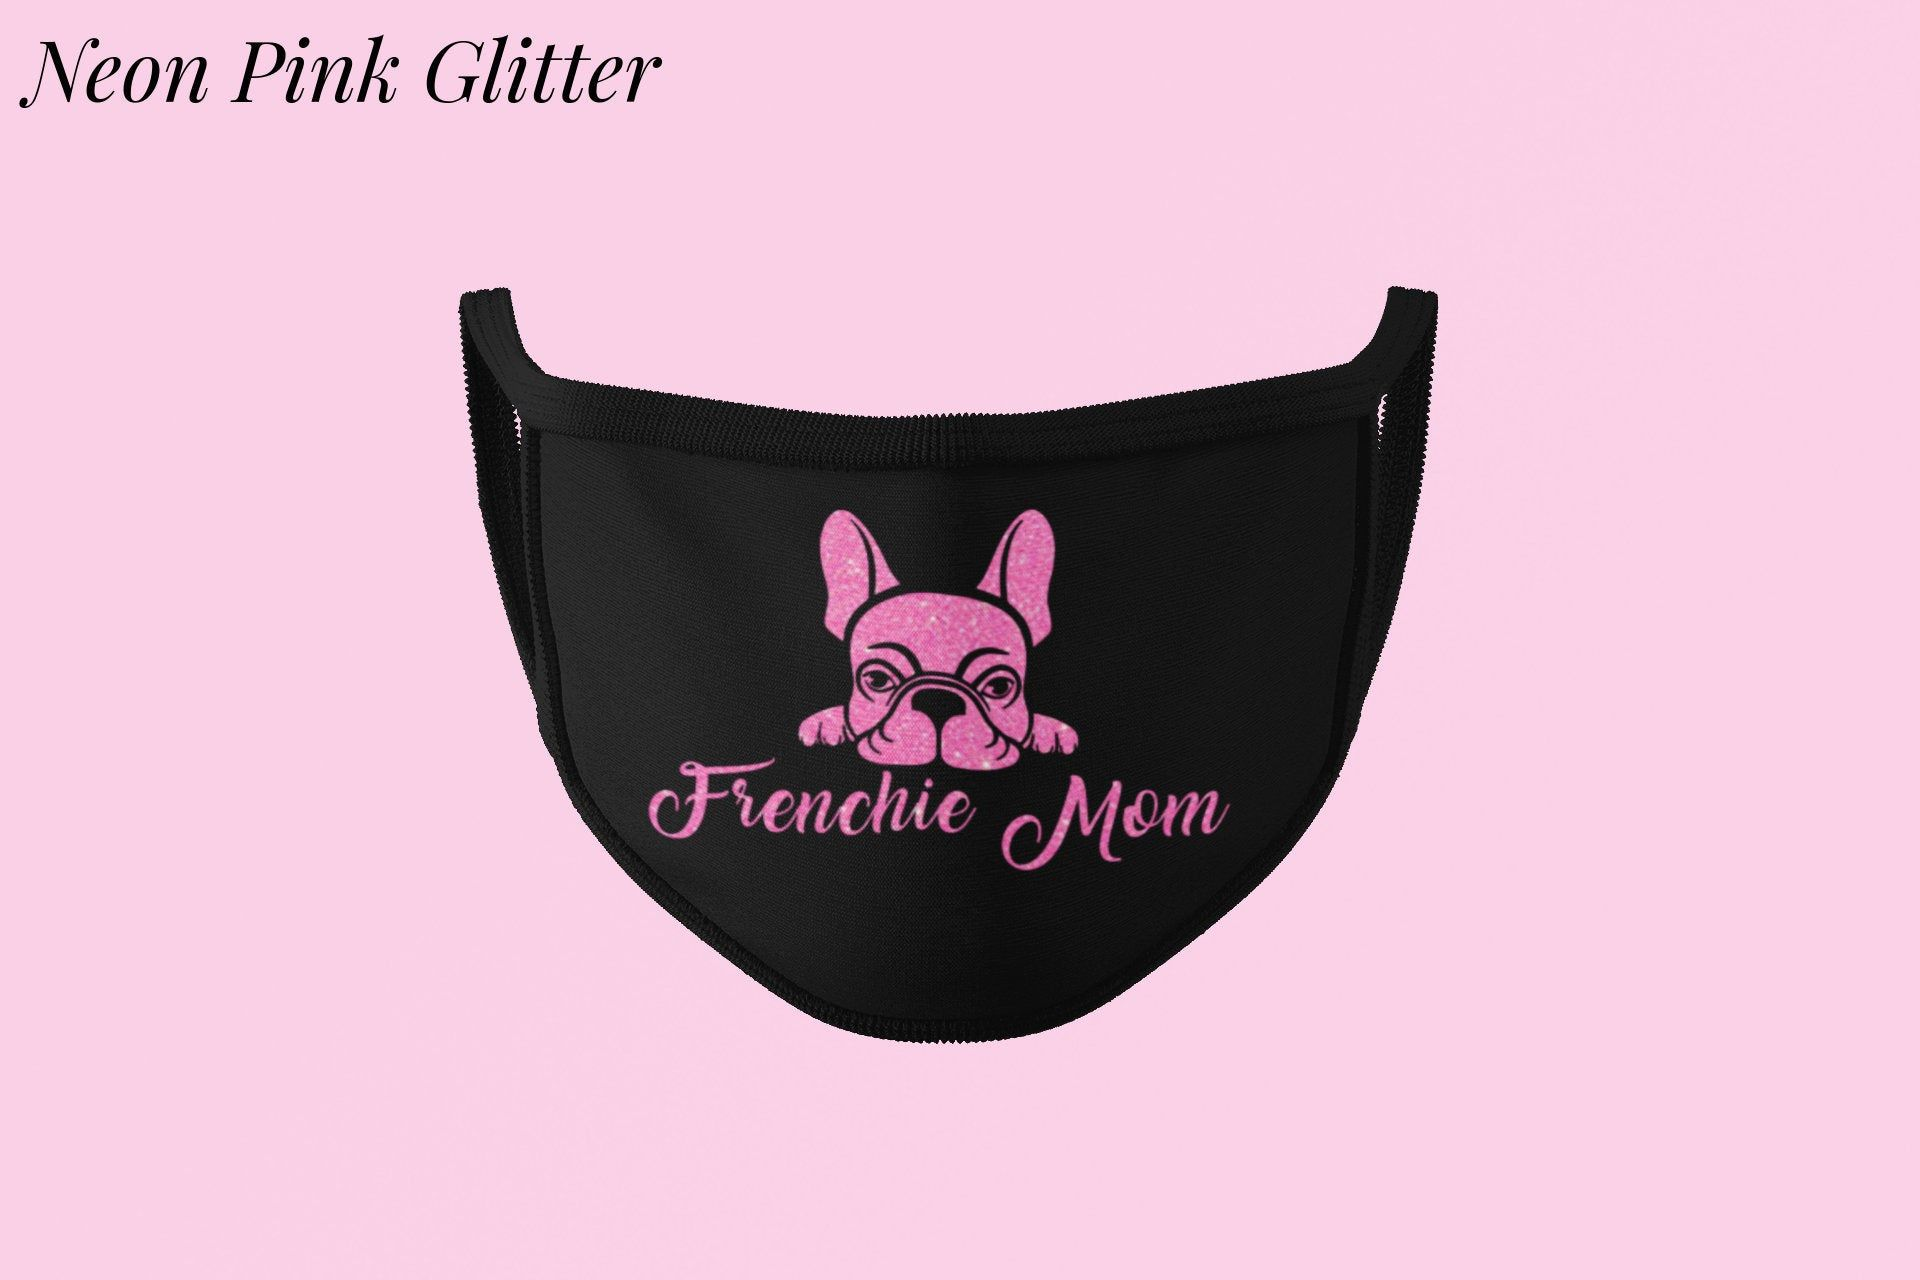 Frenchie Mom Face Mask French Bulldog Facemask Frenchie Etsy In 2020 Frenchie Mom Frenchie Face Mask